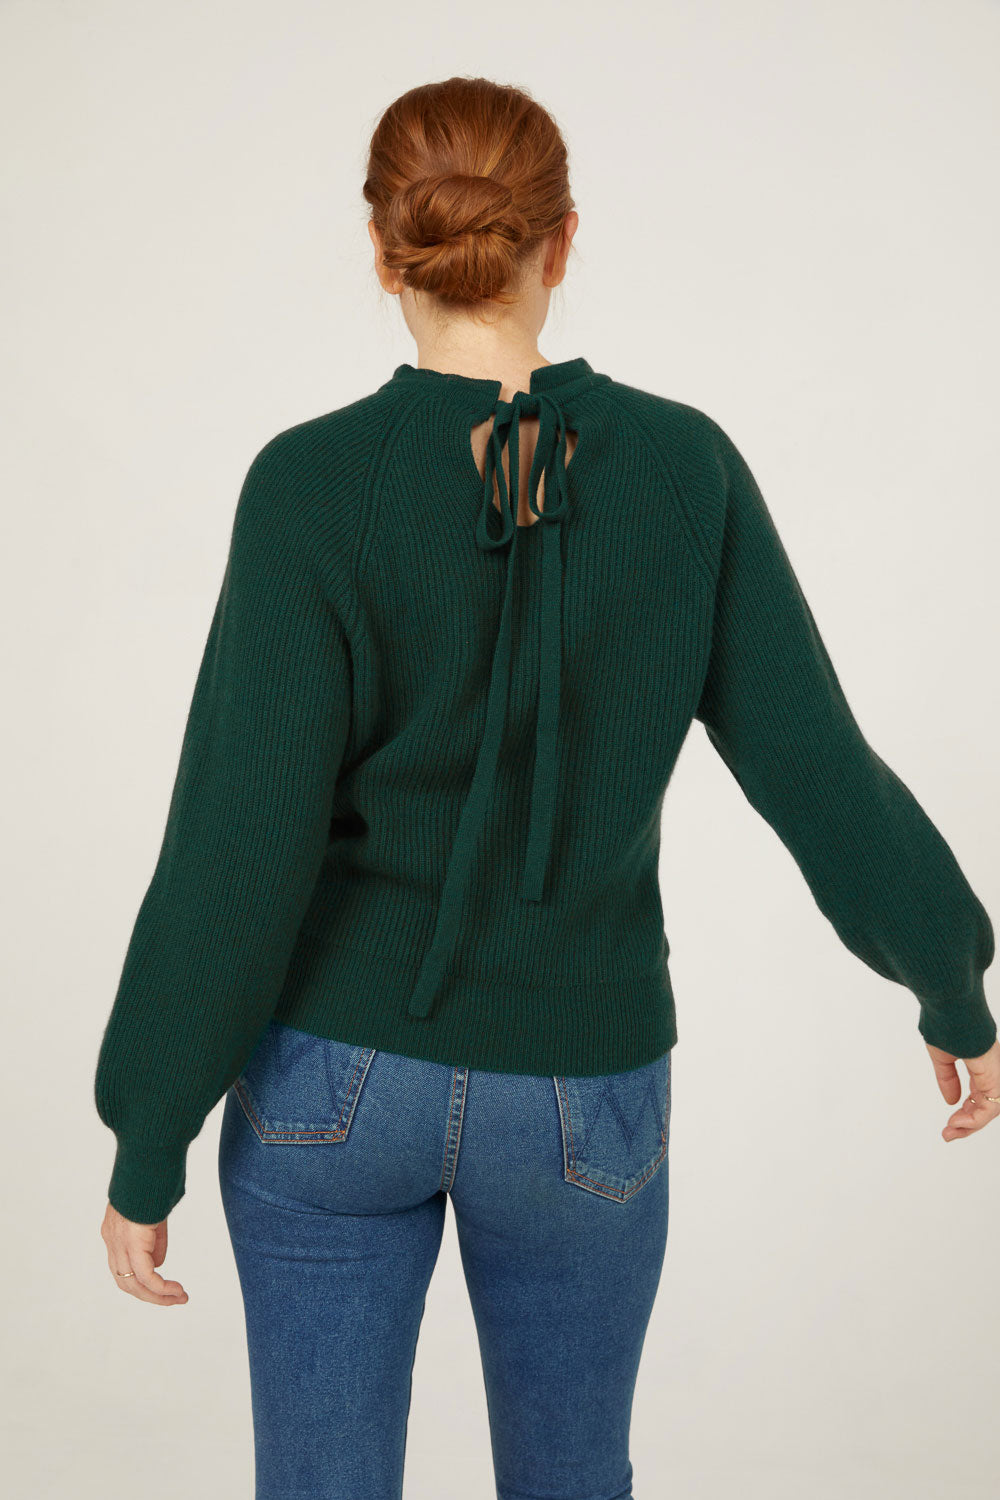 The Mock Neck Tie Back, Evergreen